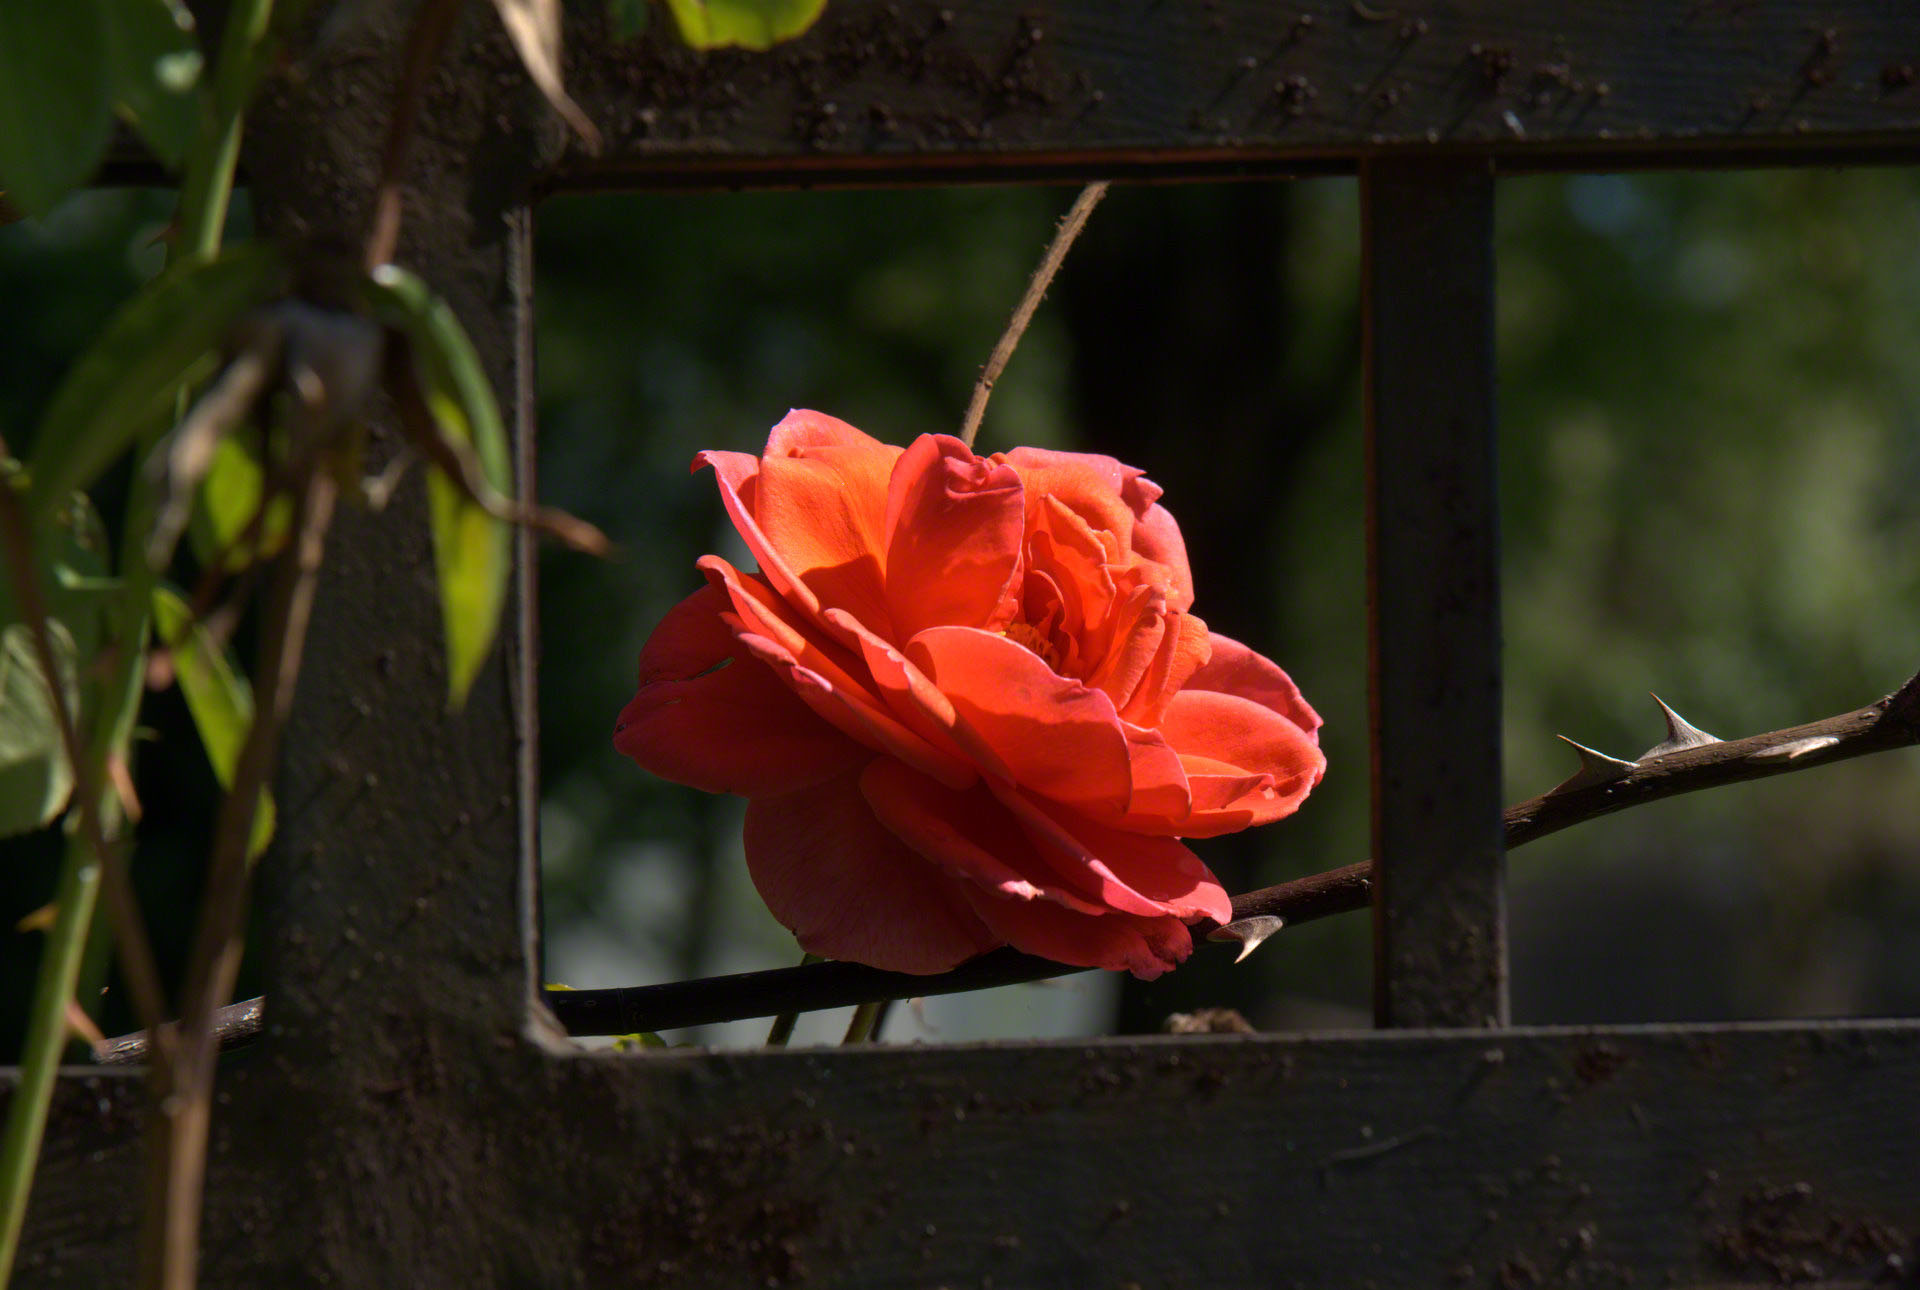 http://www.fabiovisentin.com/photography/photo/12/rose-in-a-cage.jpg